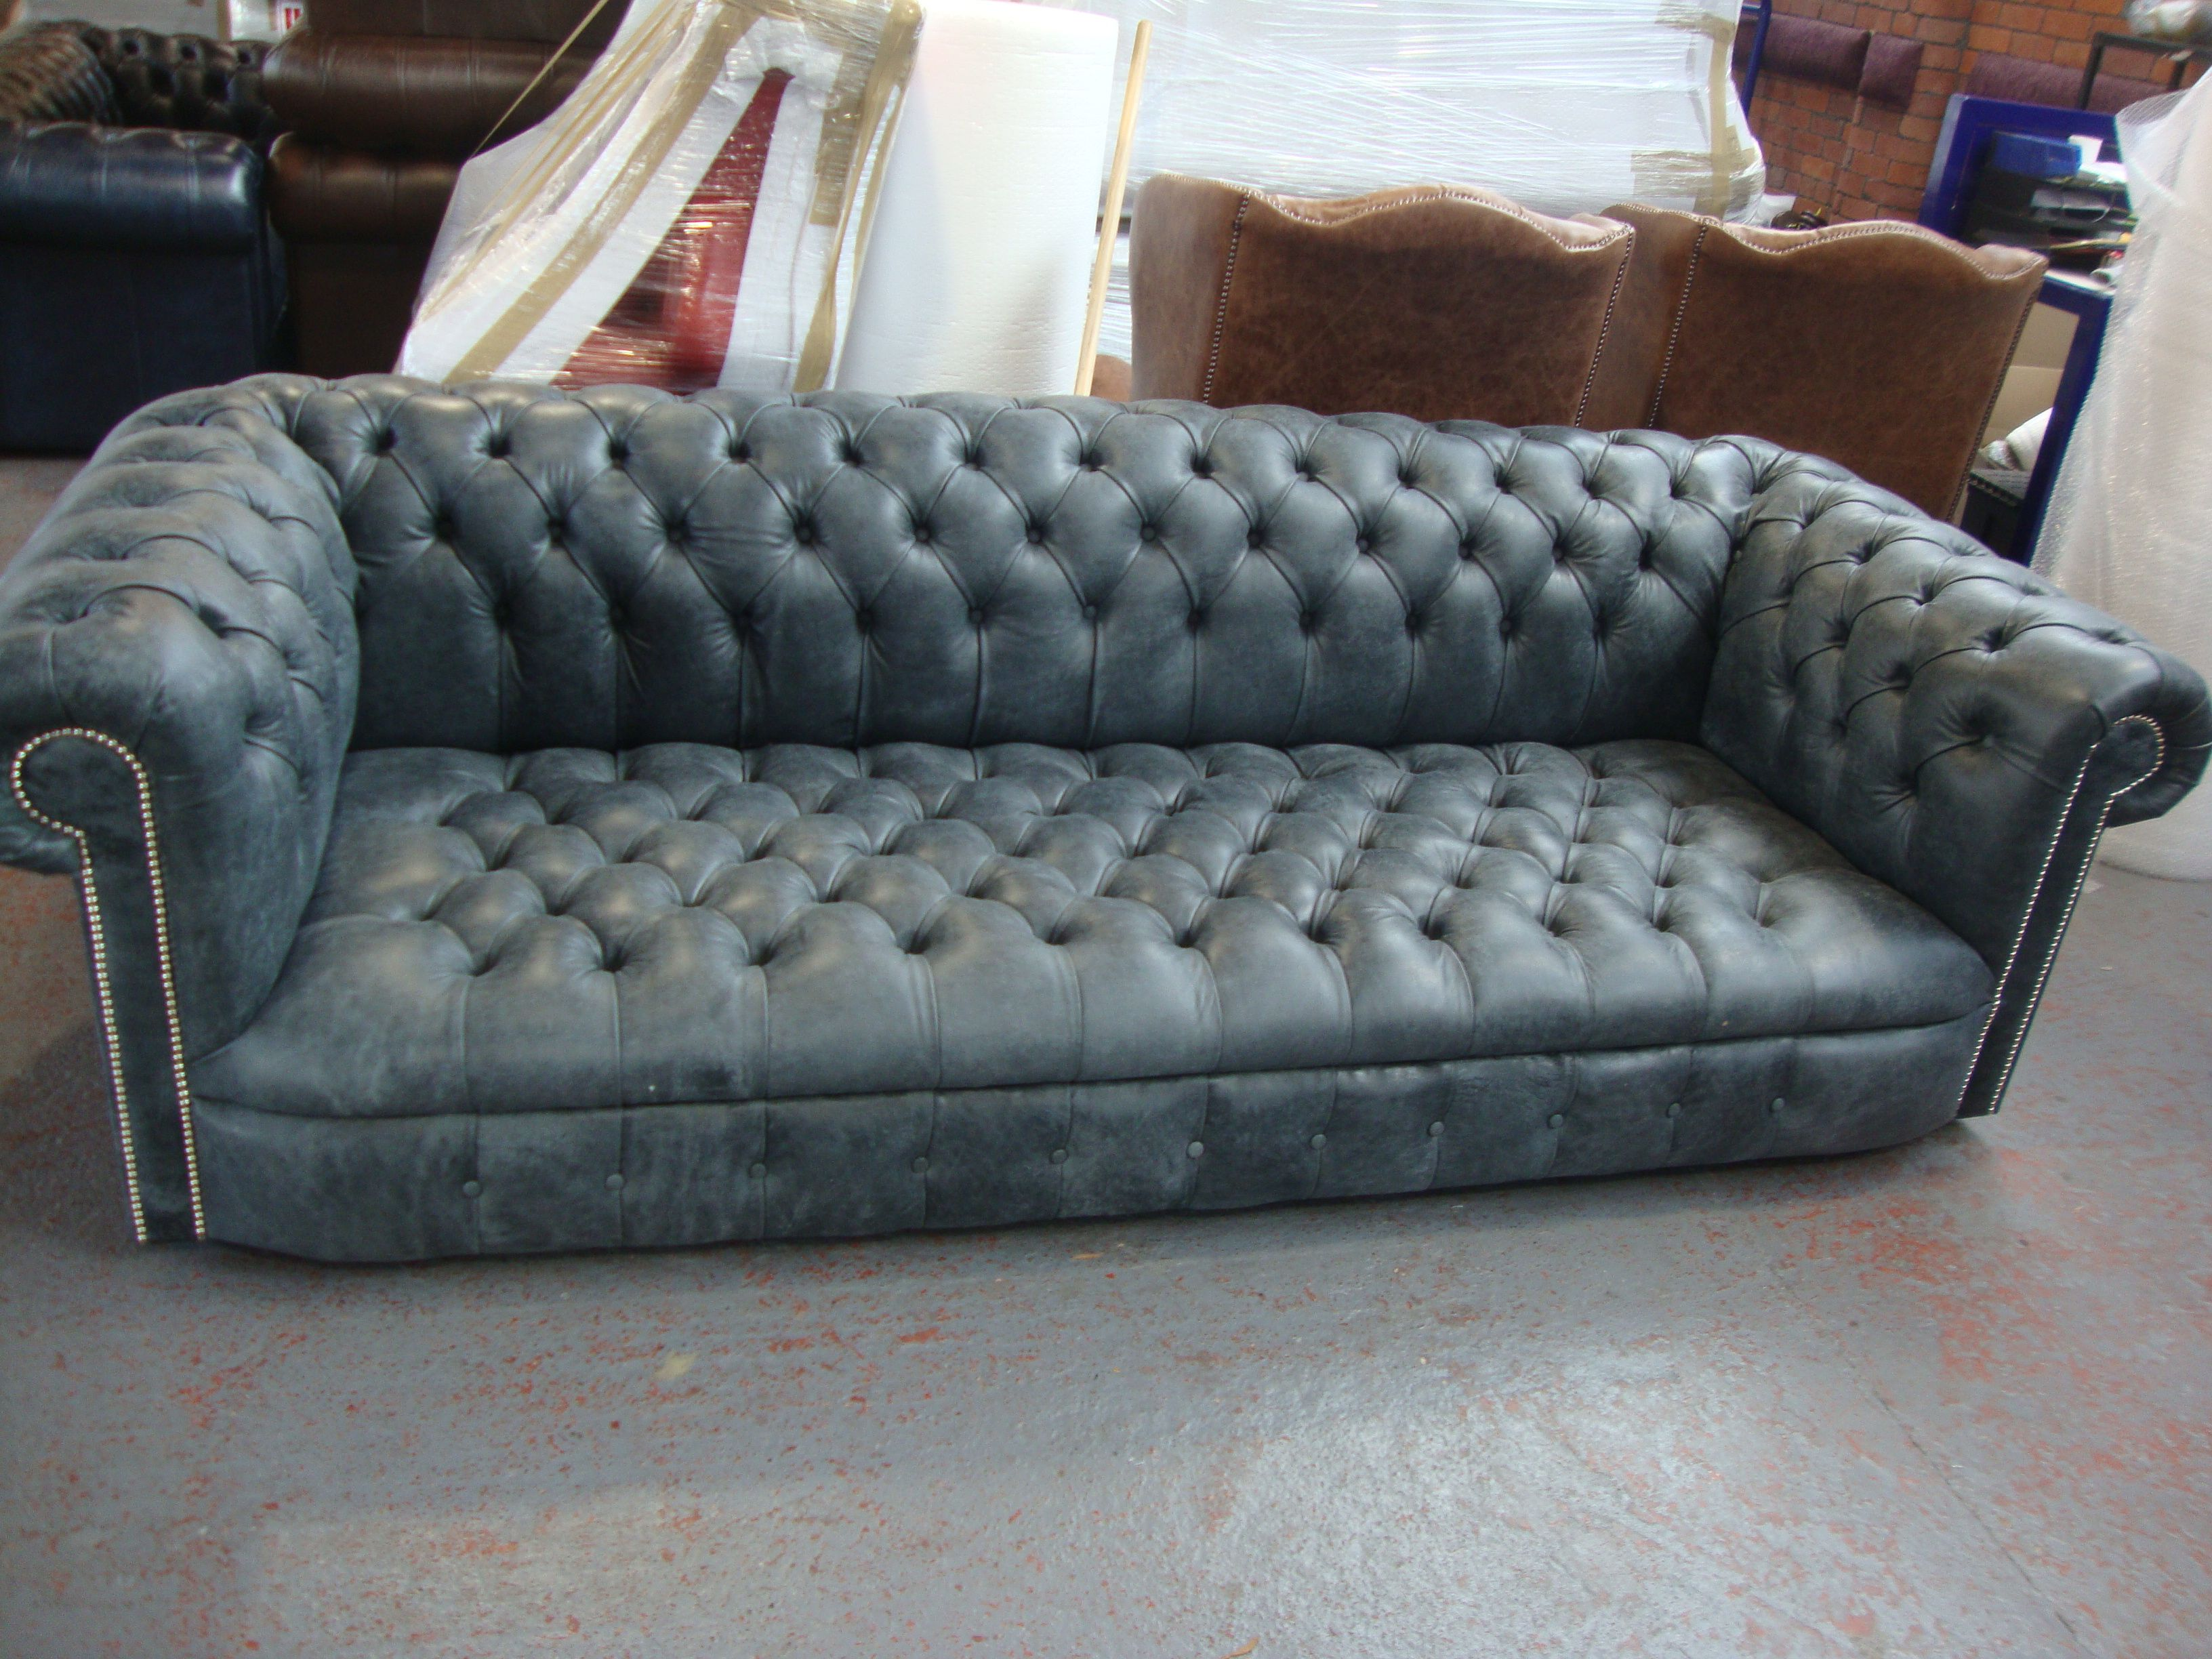 Chesterfield Schlafsofa Kensington Buttoned Tufted Seat Chesterfield 3 Seater Sofa In